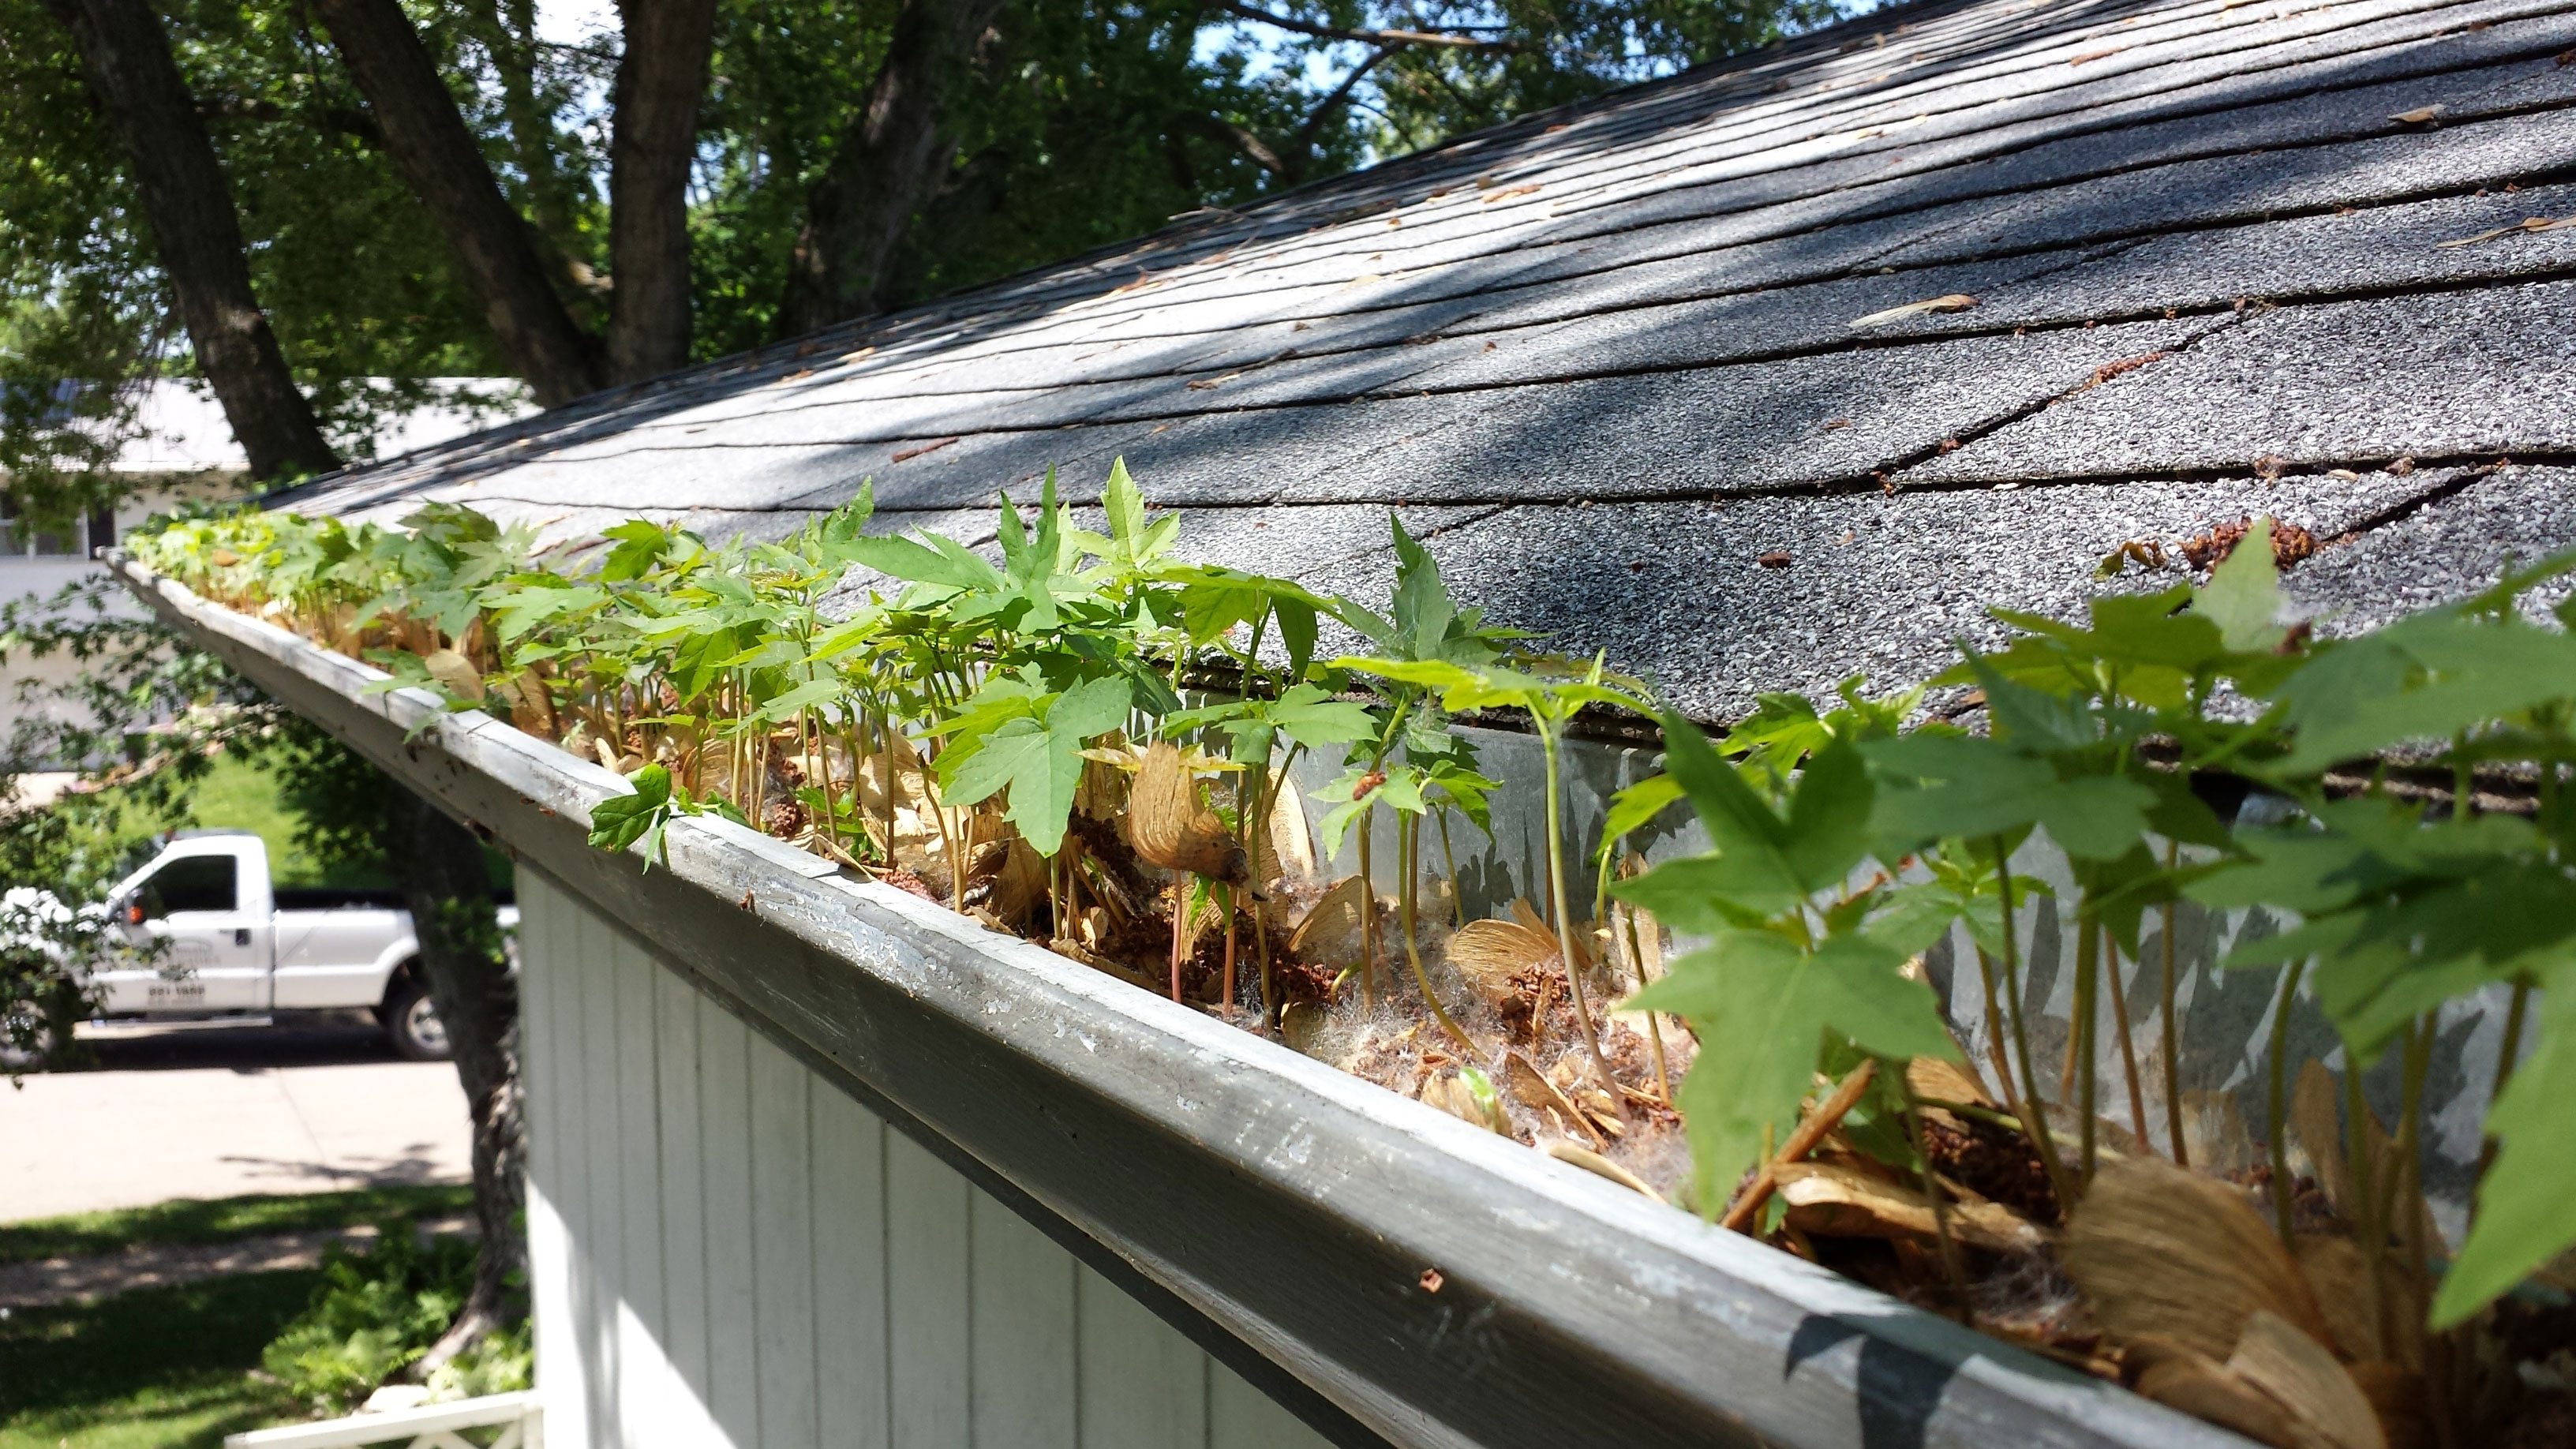 Gutter Cleaning And Maintenance By Omaha Organics Lawn Care